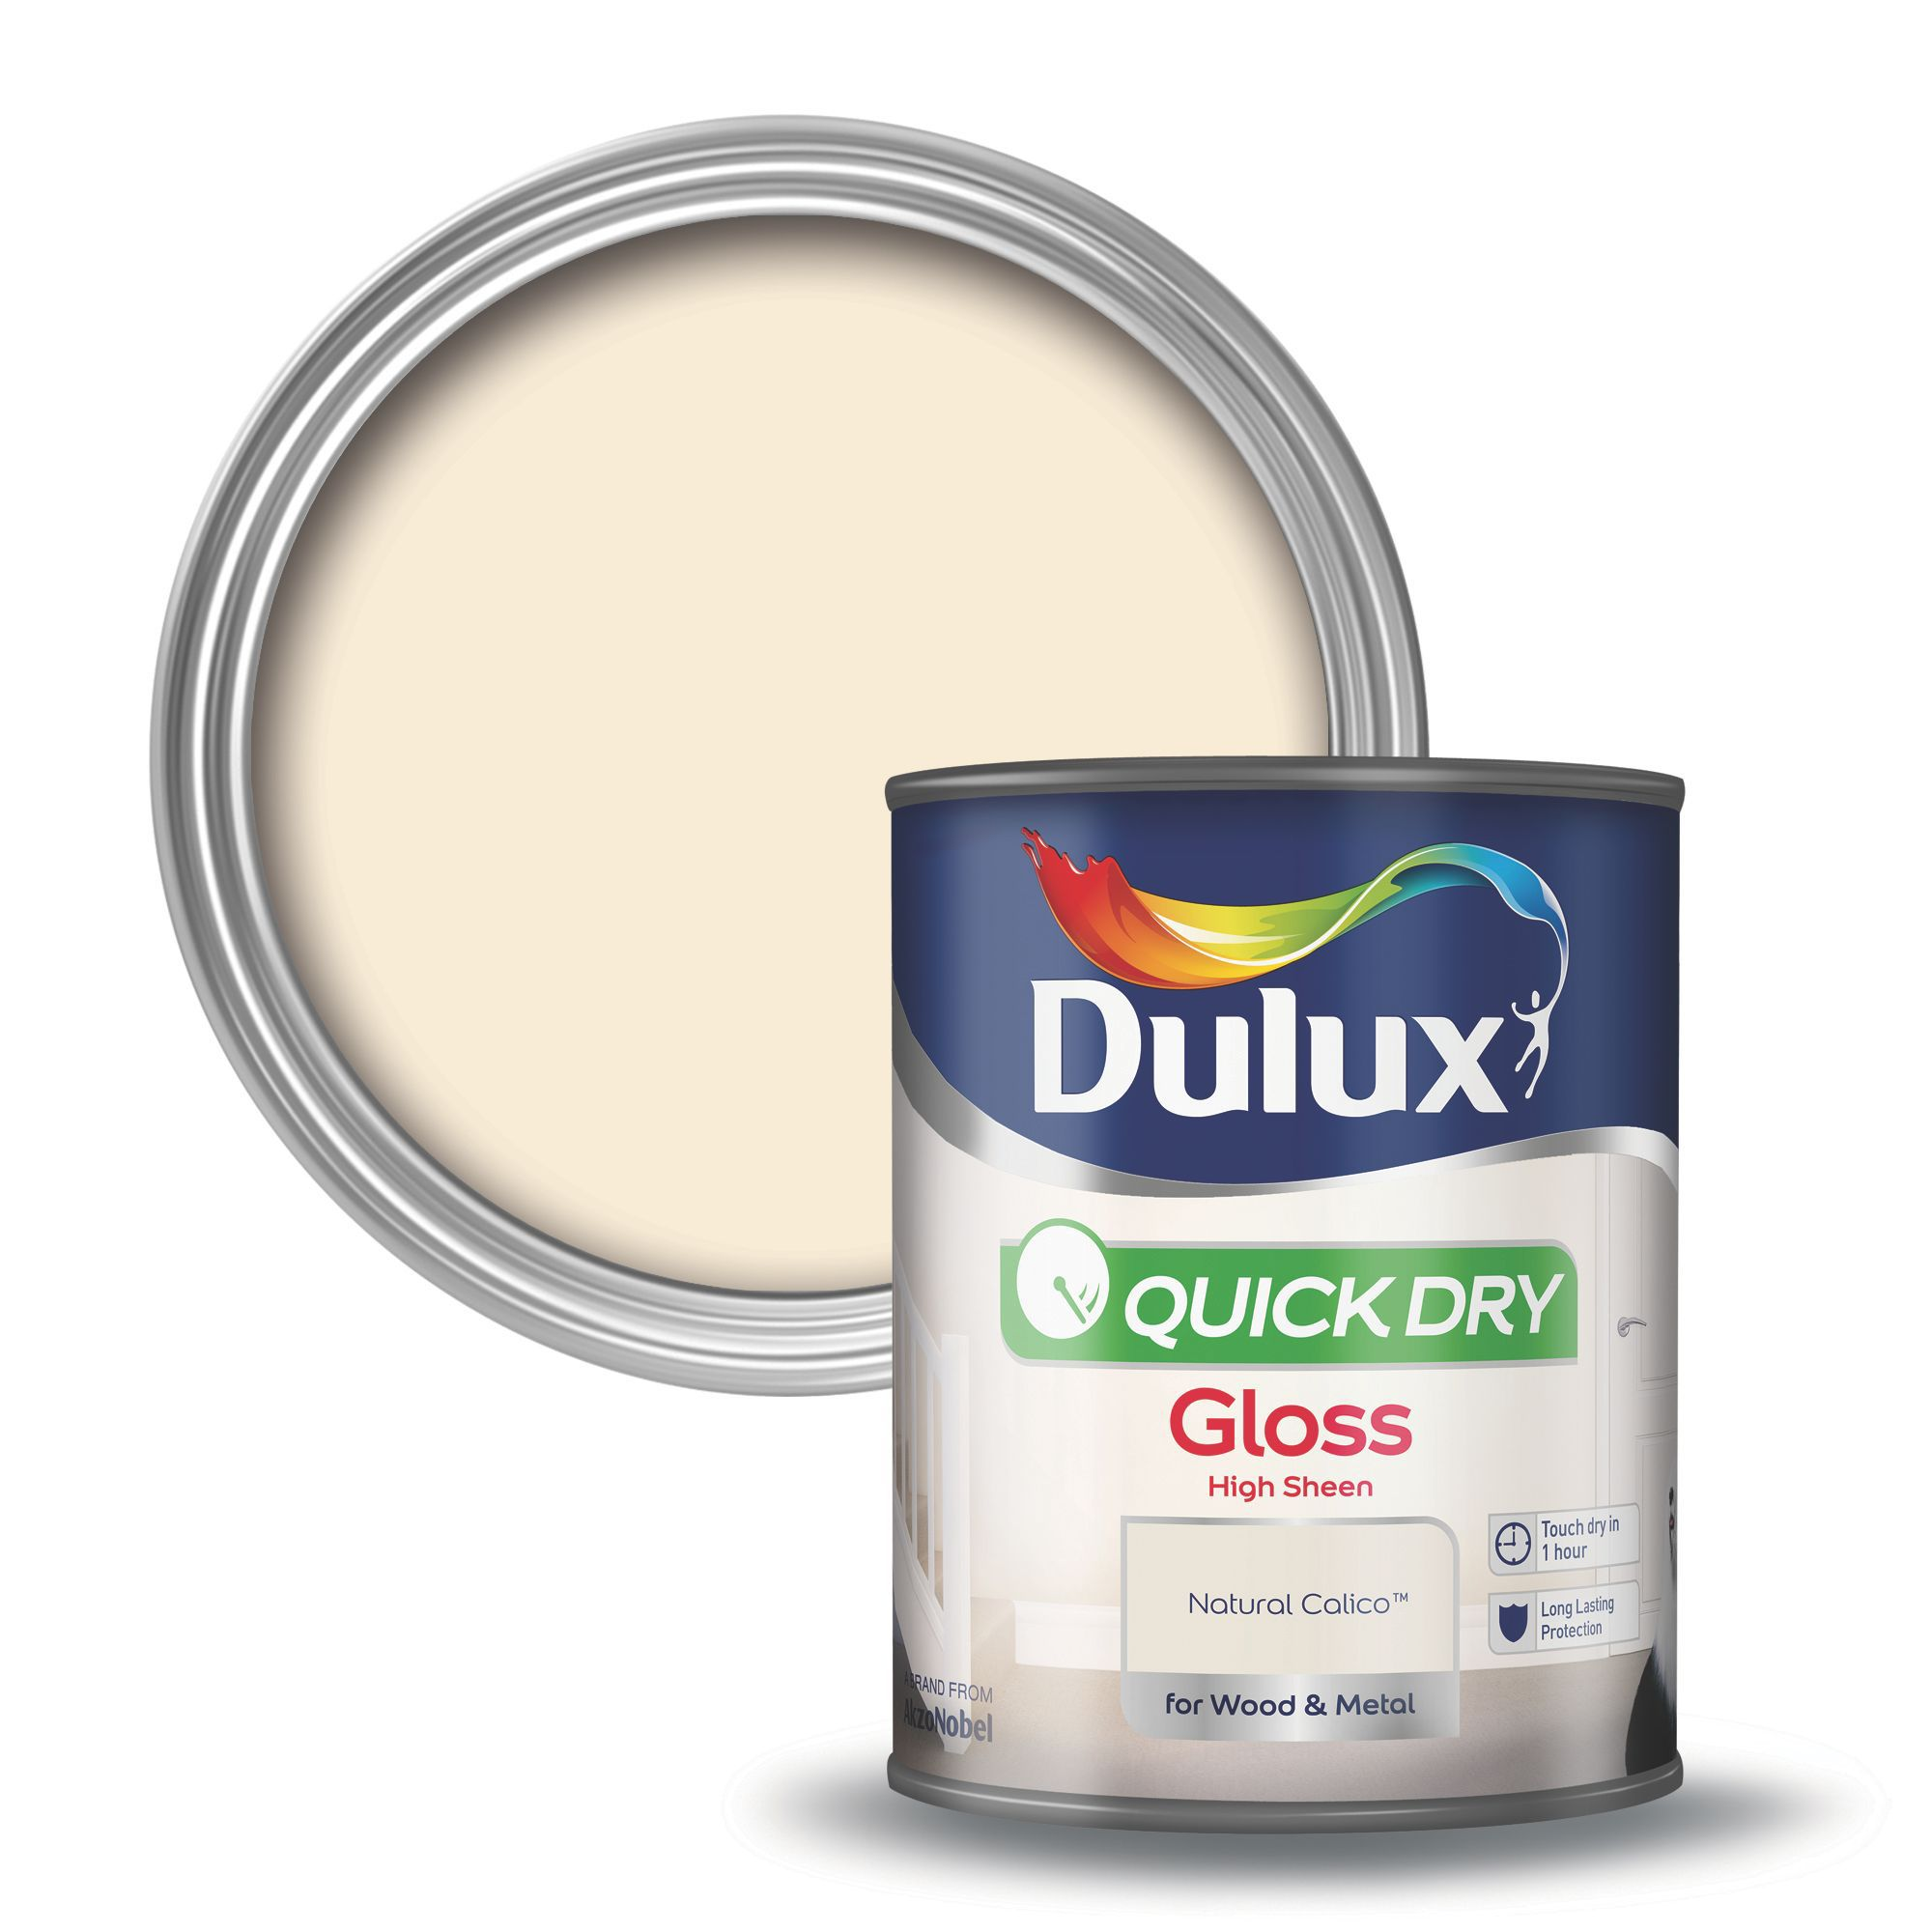 Dulux Interior Natural Calico Gloss Wood Metal Paint 750ml Departments Diy At B Q